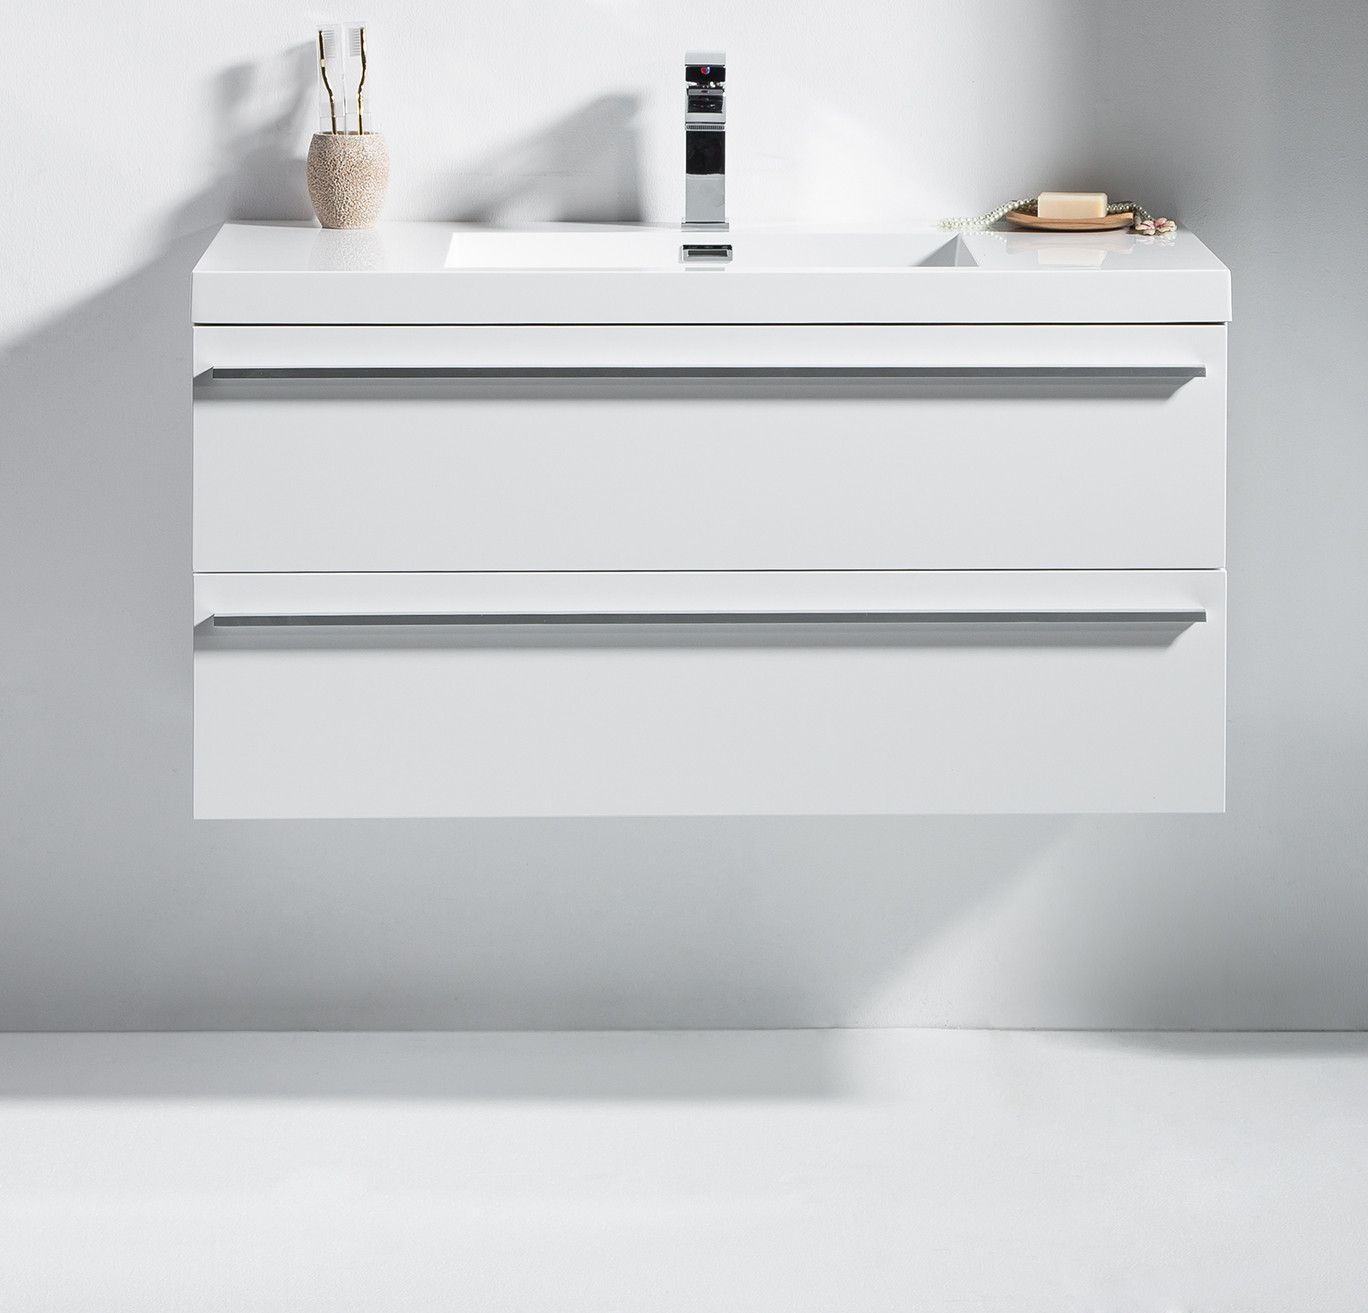 com photos and of bathroom unique cabinet inspirational may bo pictures sink store vanity console htsrec